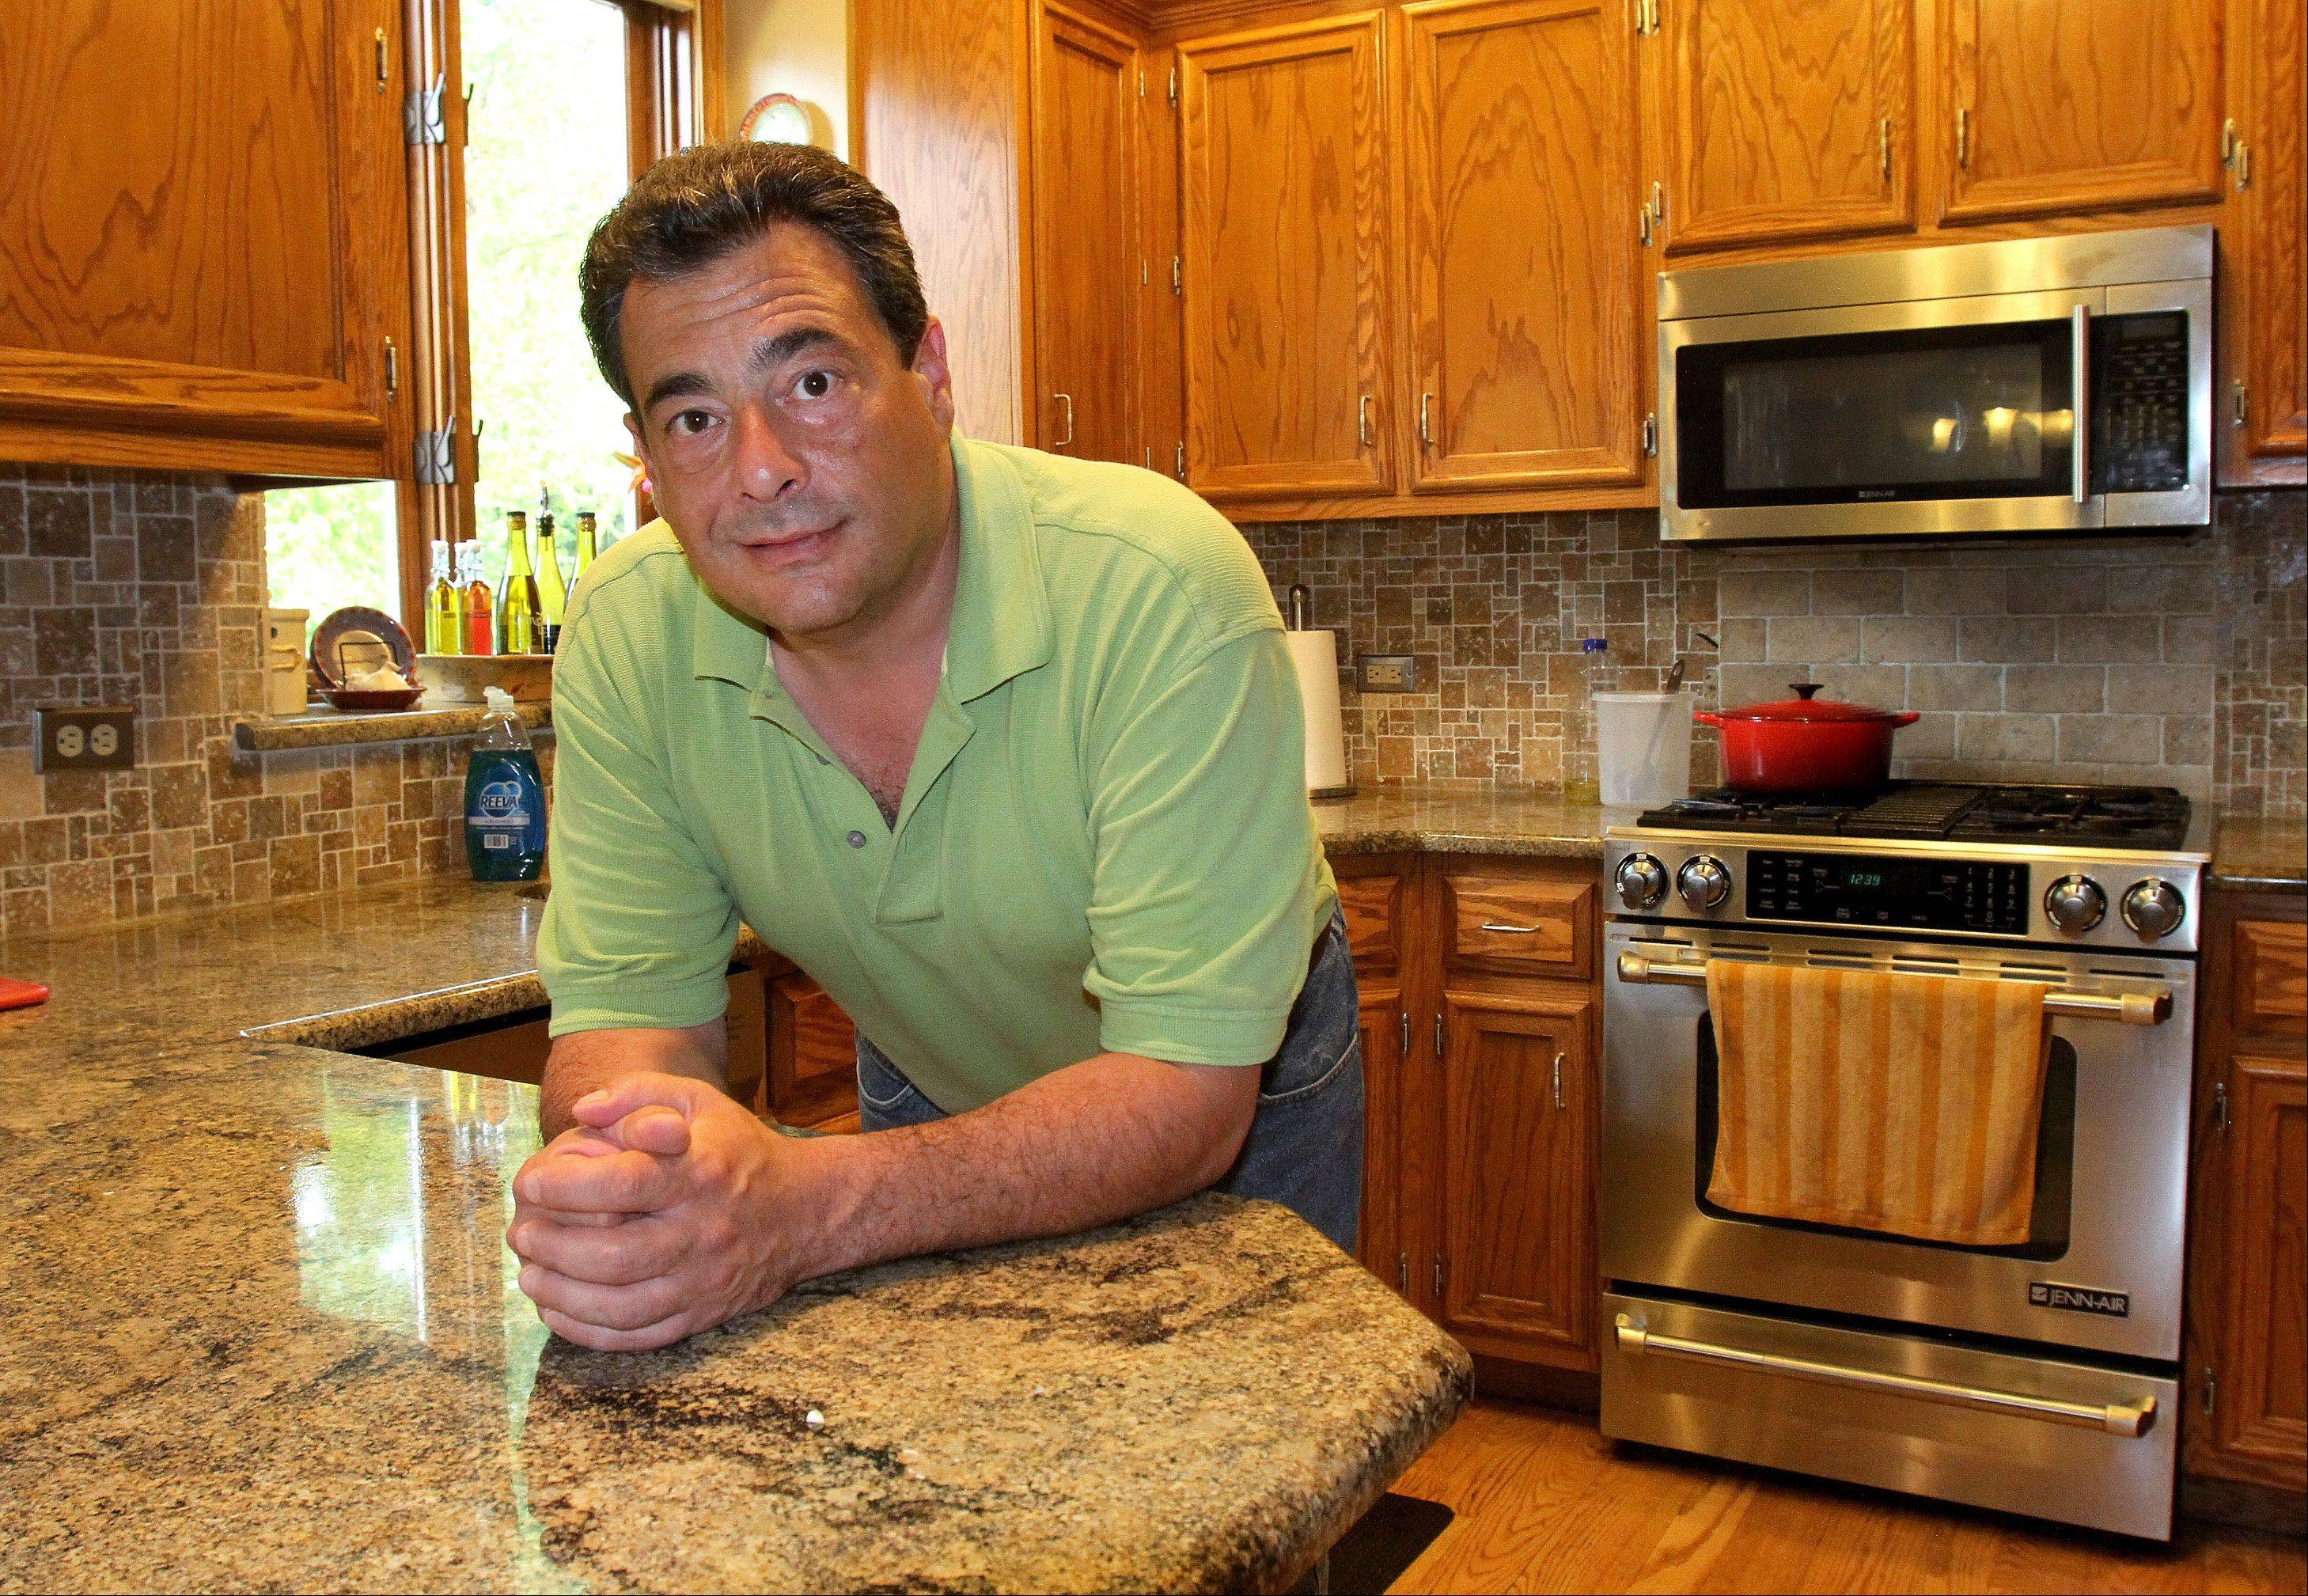 Growing up in an Italian family gave Tony Barone of Naperville a head start in the kitchen.